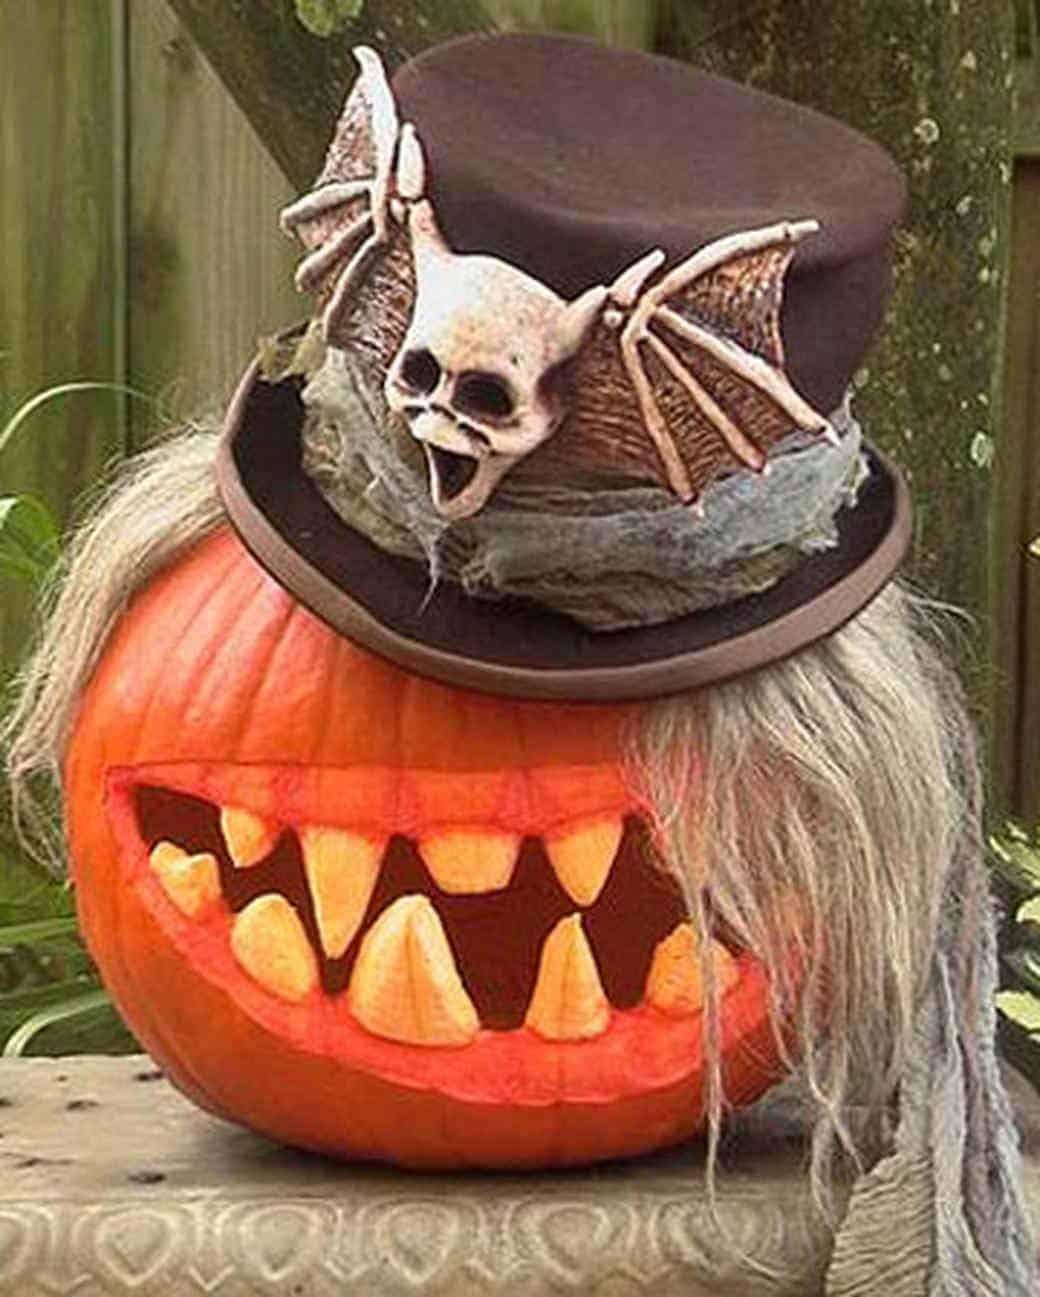 Creative Halloween Pumpkin Carving Ideas-14-1 Kindesign